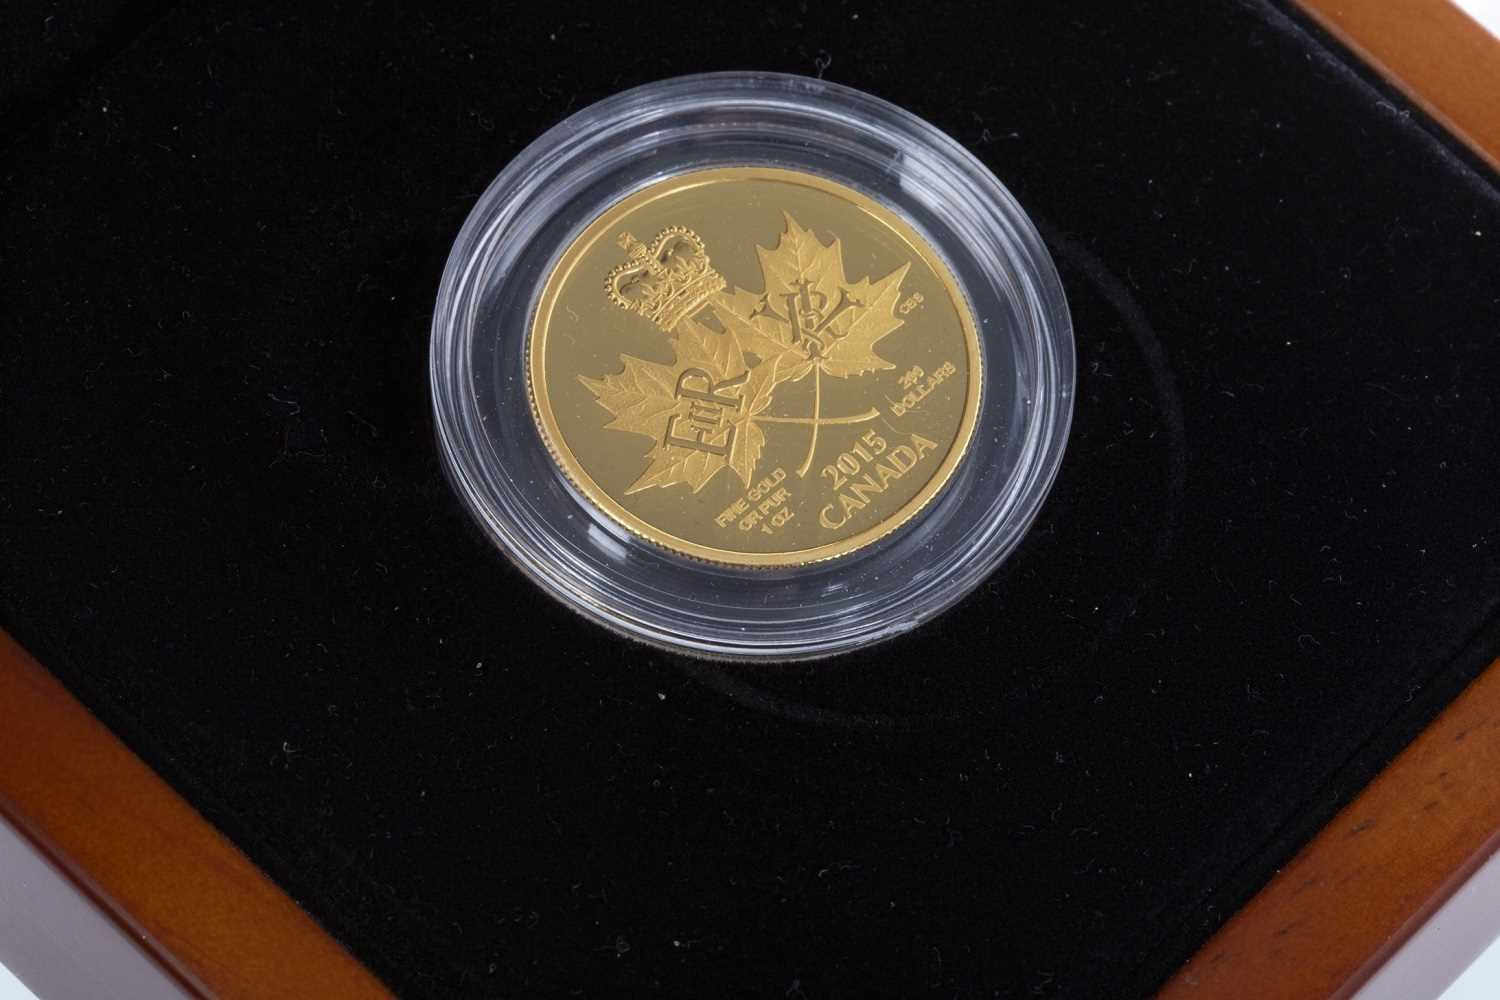 Lot 518-A THE ROYAL CANADIAN MINT 2015 $200 GOLD COIN